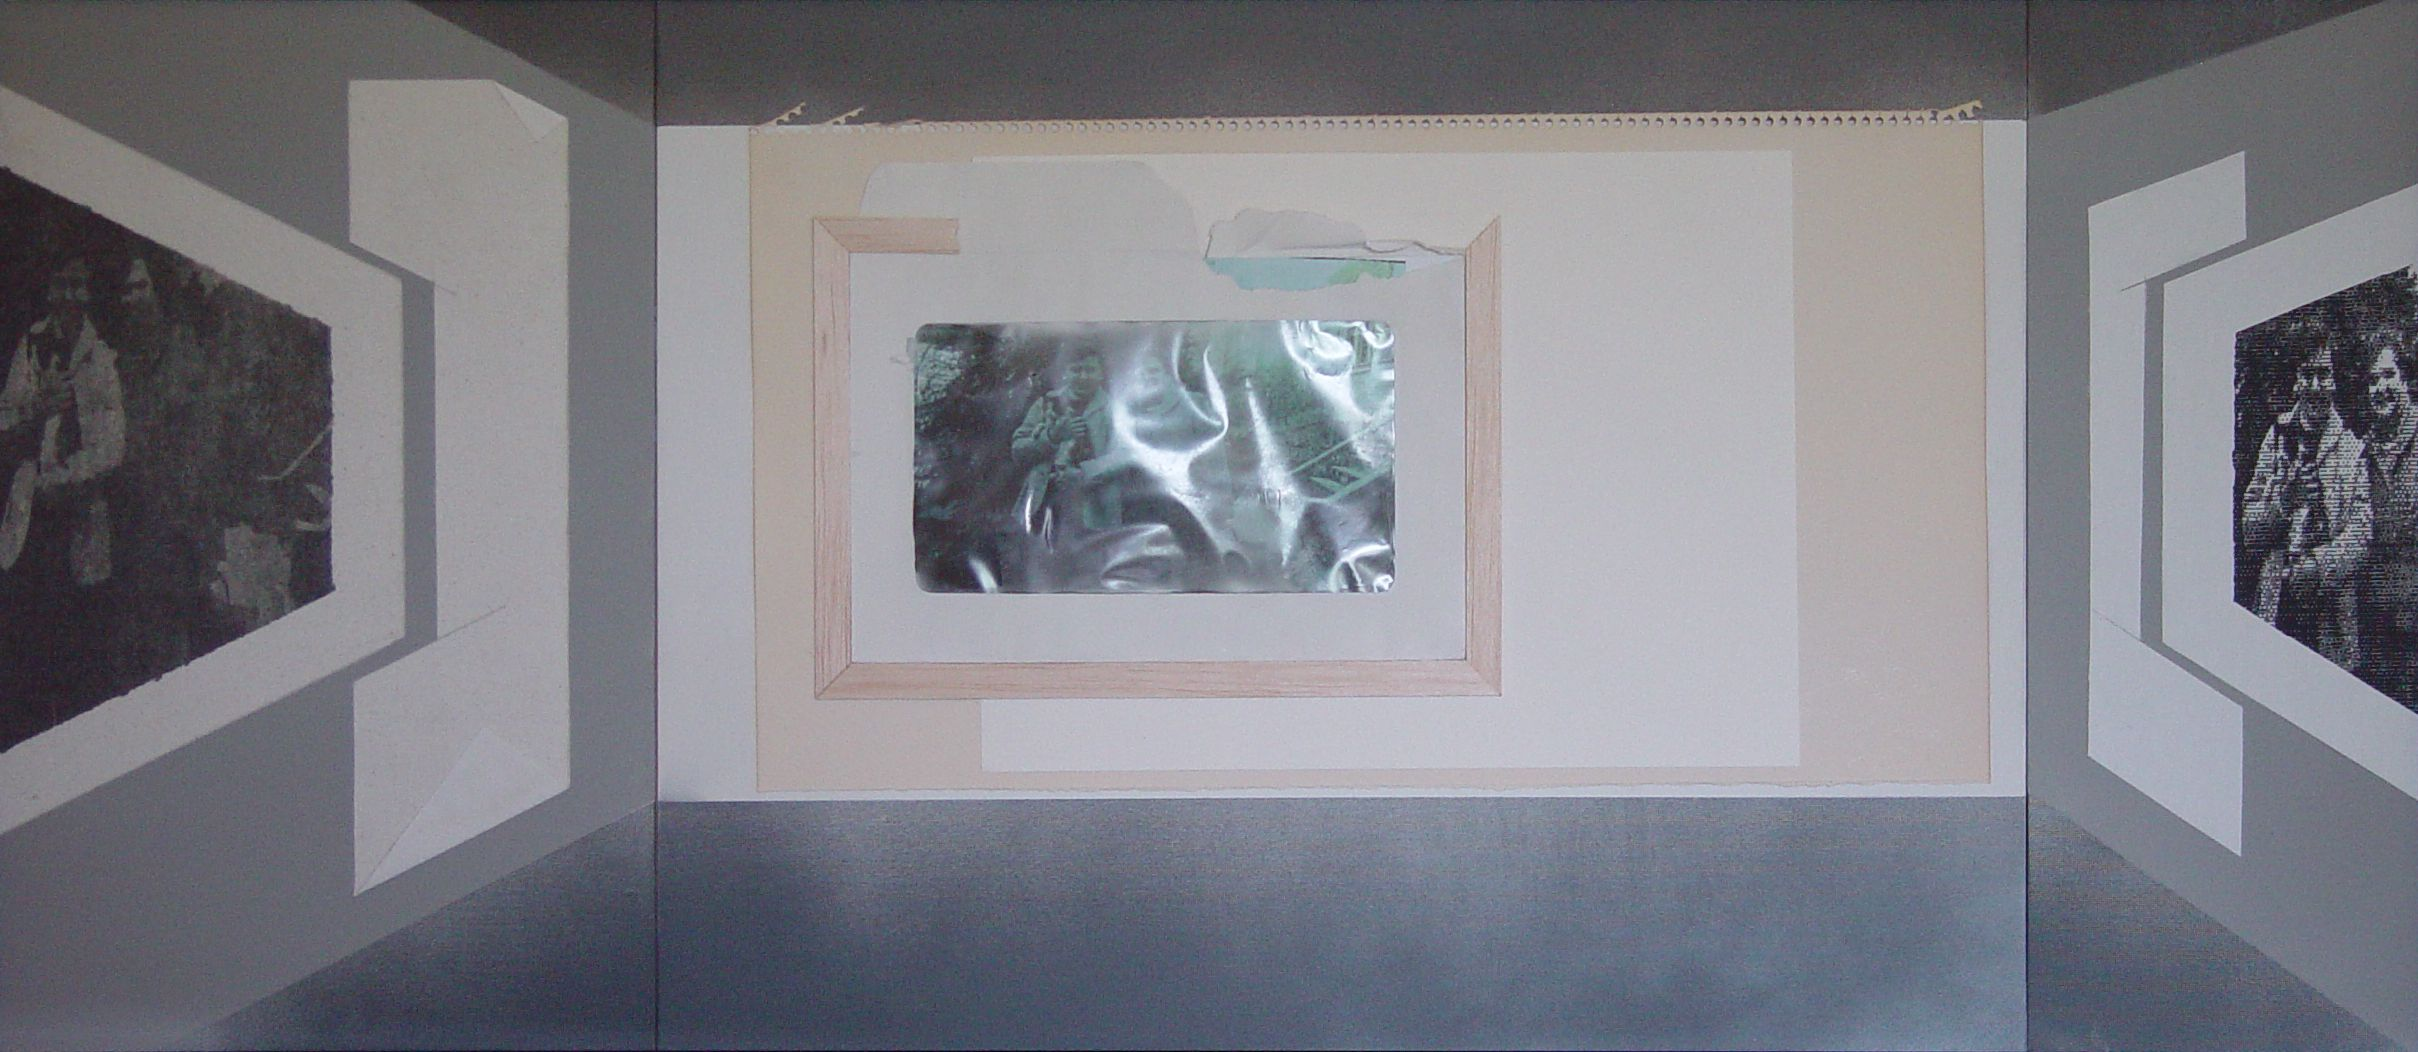 1601 Pine Hollow Road: Through a Glary, Blurry Window Triptych: My Mother, My Sister, and Shortie, 2018, Mixed Media: paper, wood, aerosol, window envelope, inkjet-printed scanned and manipulated images on paper and canvas. 16 x 40 inches, $600